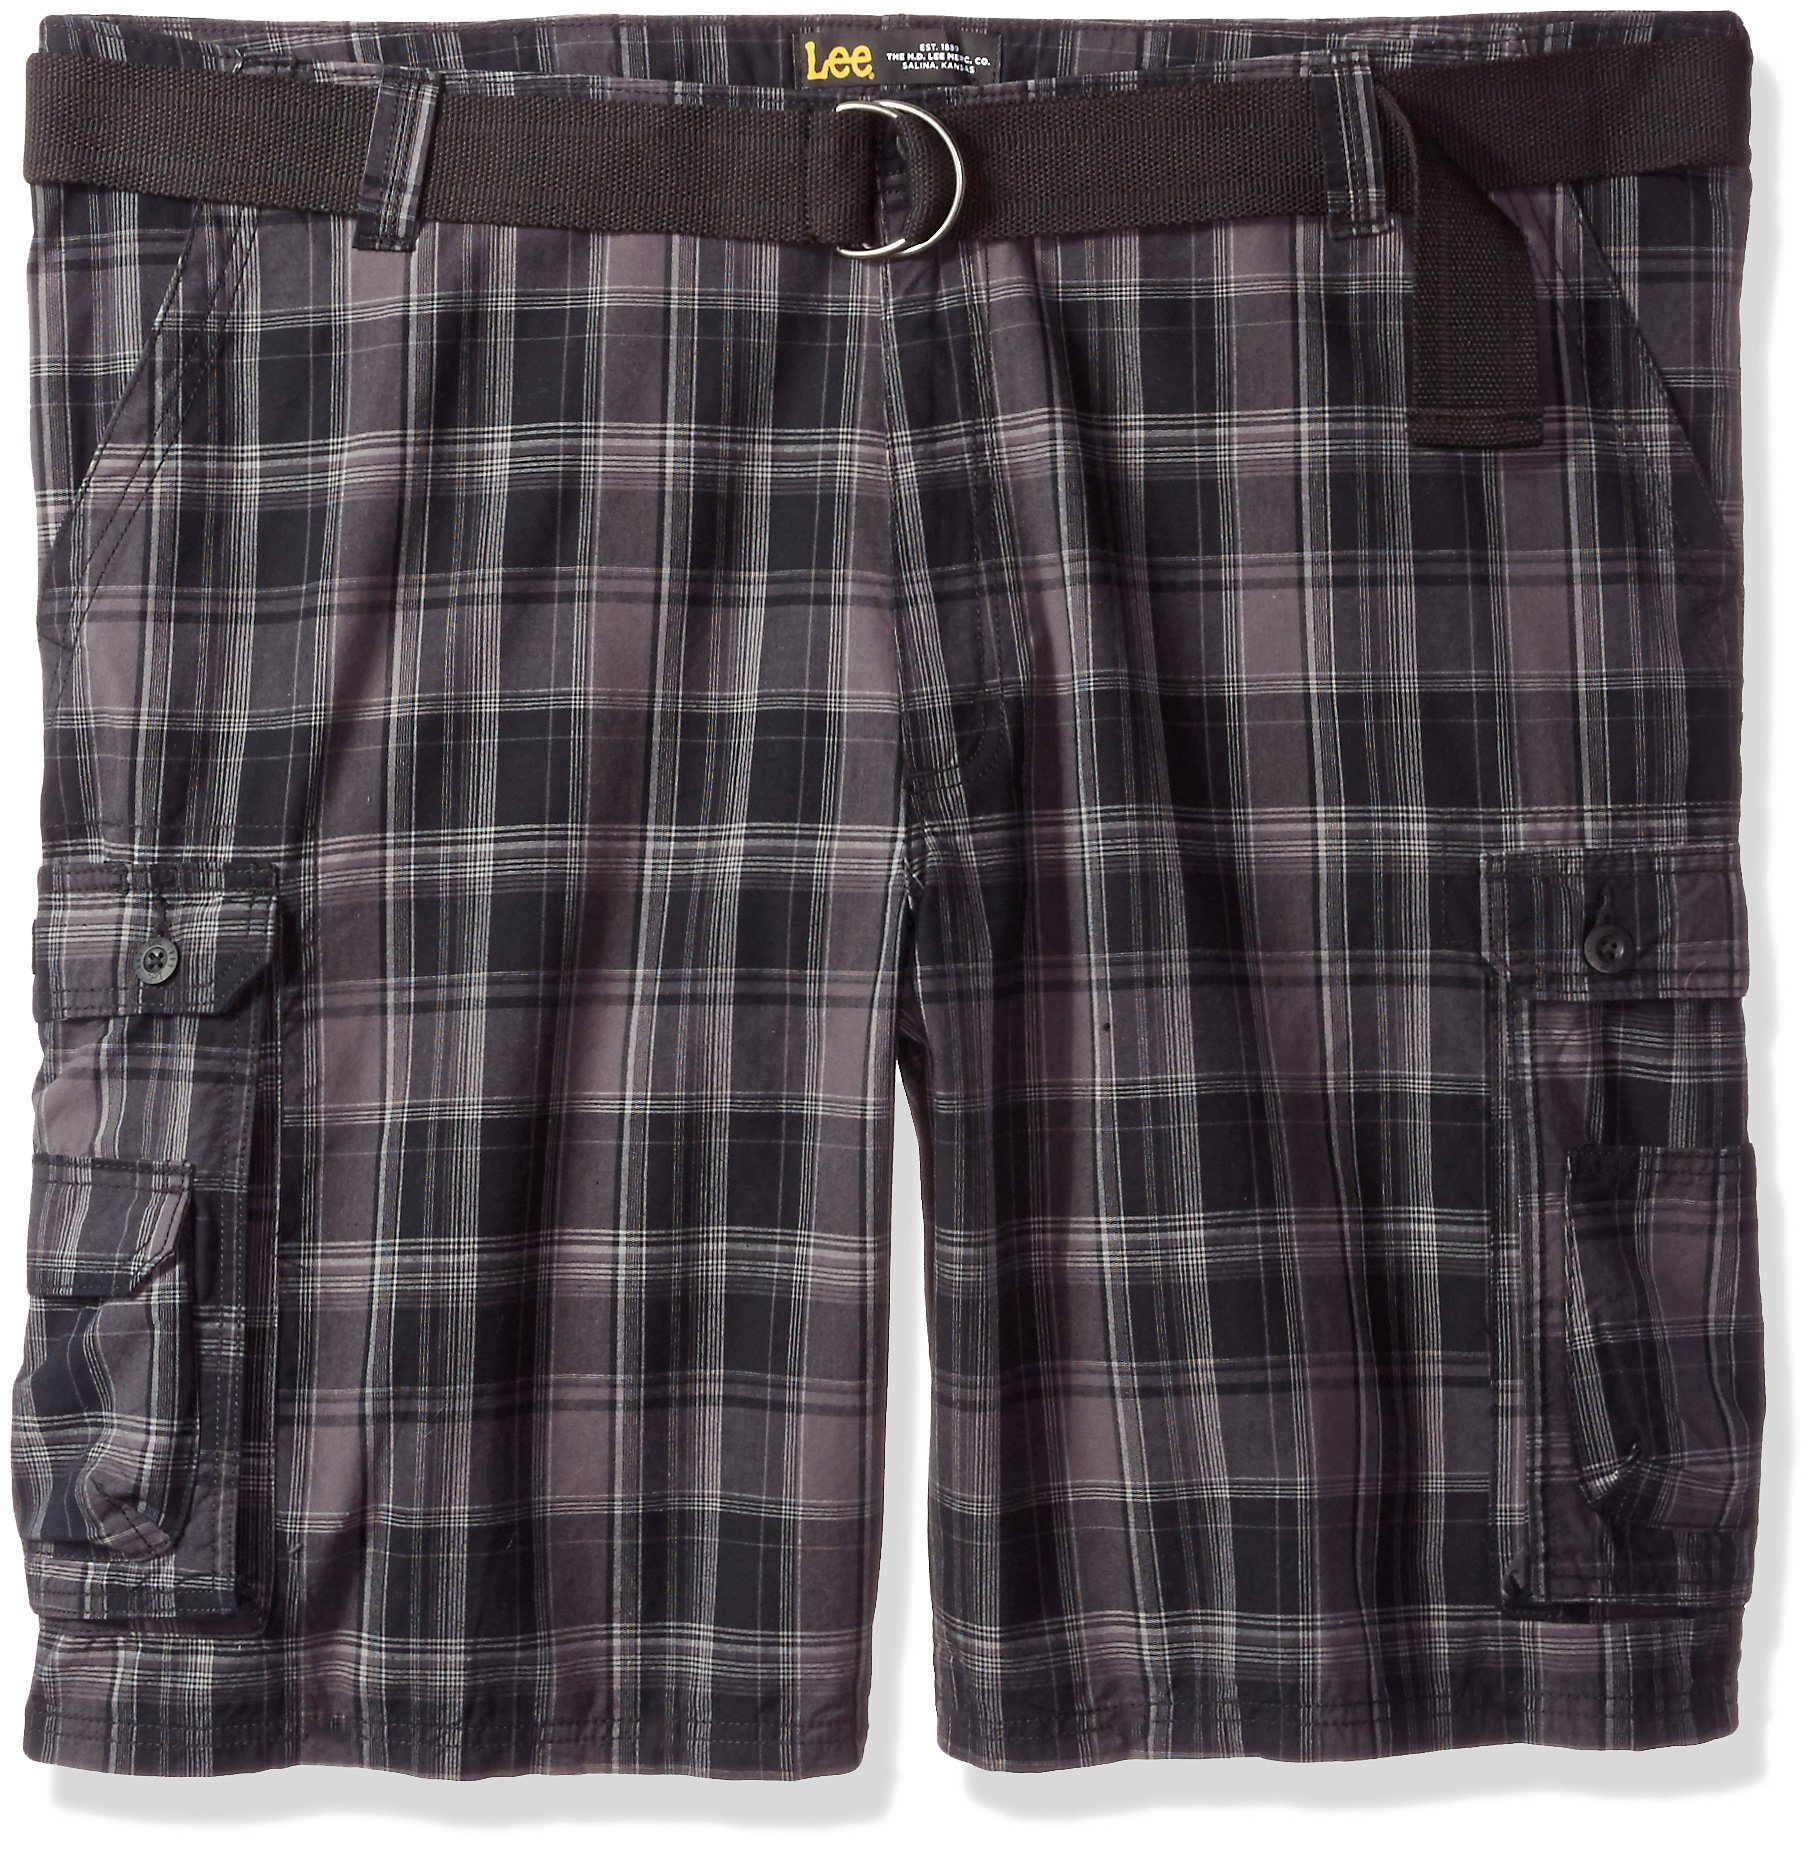 LEE Men's Big and Tall New Belted Wyoming Cargo Short, Black Clifton Plaid, 52